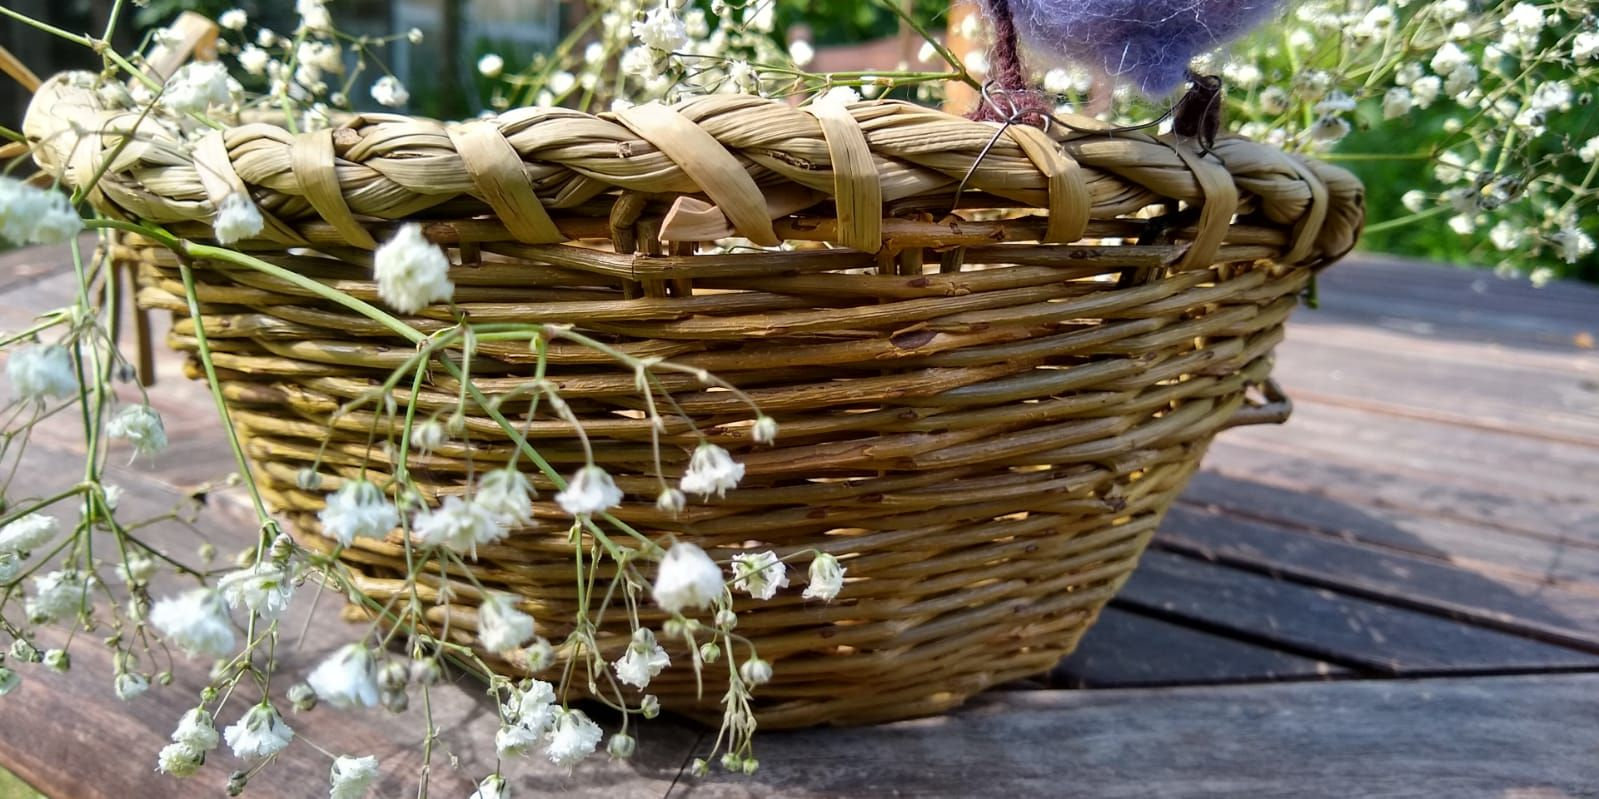 A hand-woven basket sits on the pavement. Out of it spring white and green flowers and fauna.